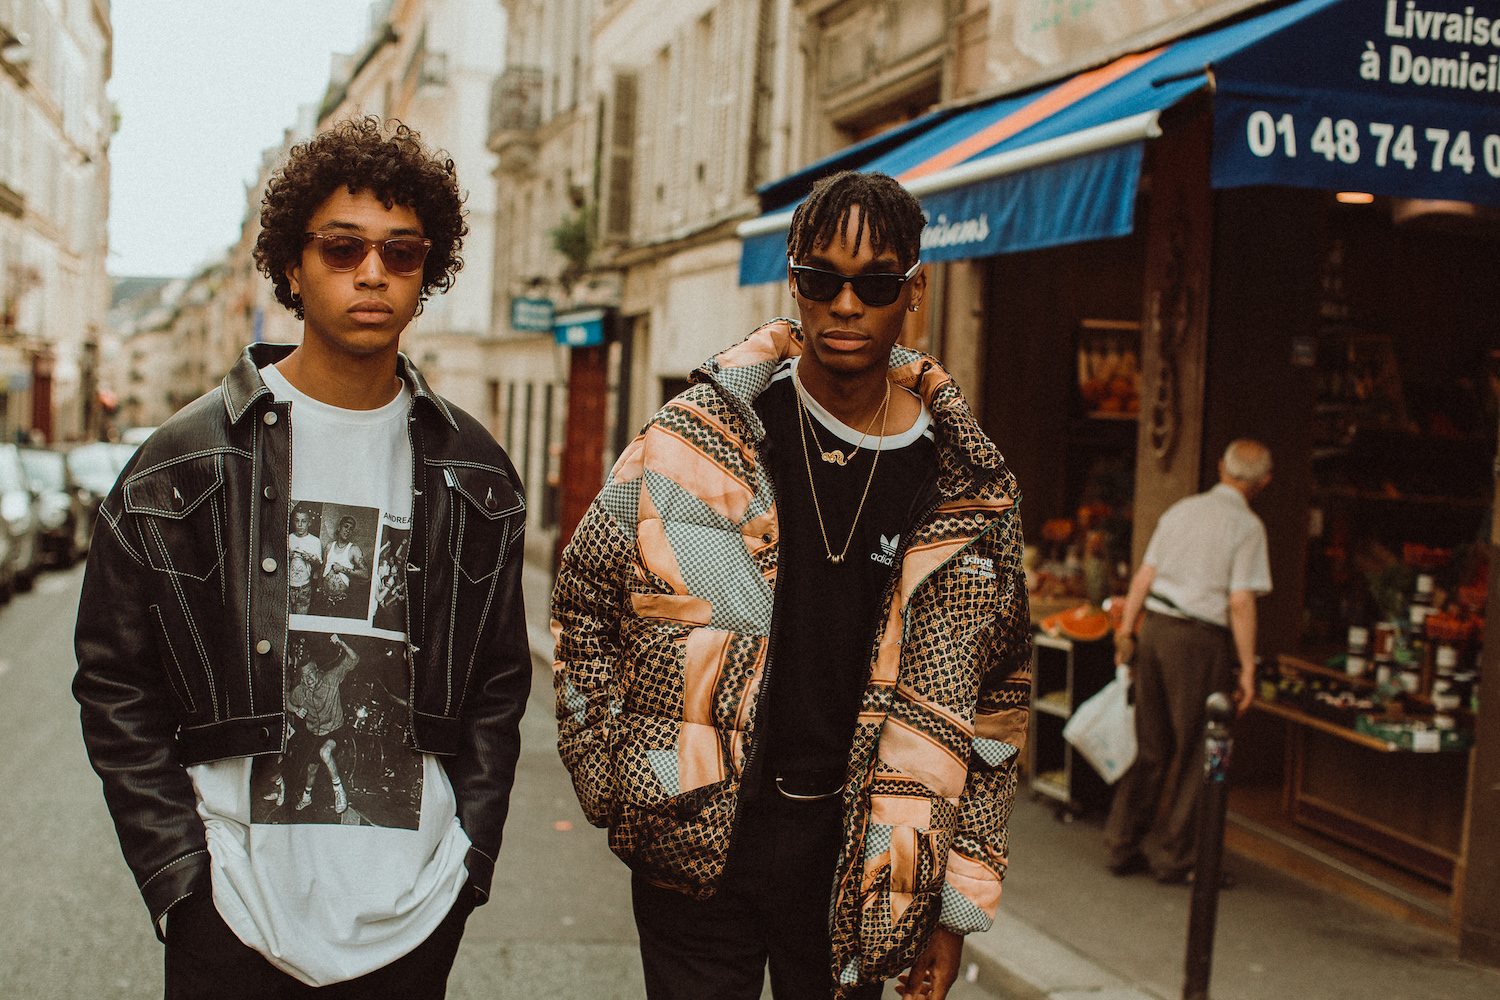 Ray-Ban Set to Drop Carnaby Street Exclusive and launches Ray-Ban Studios Collab Featuring the Martinez Brothers